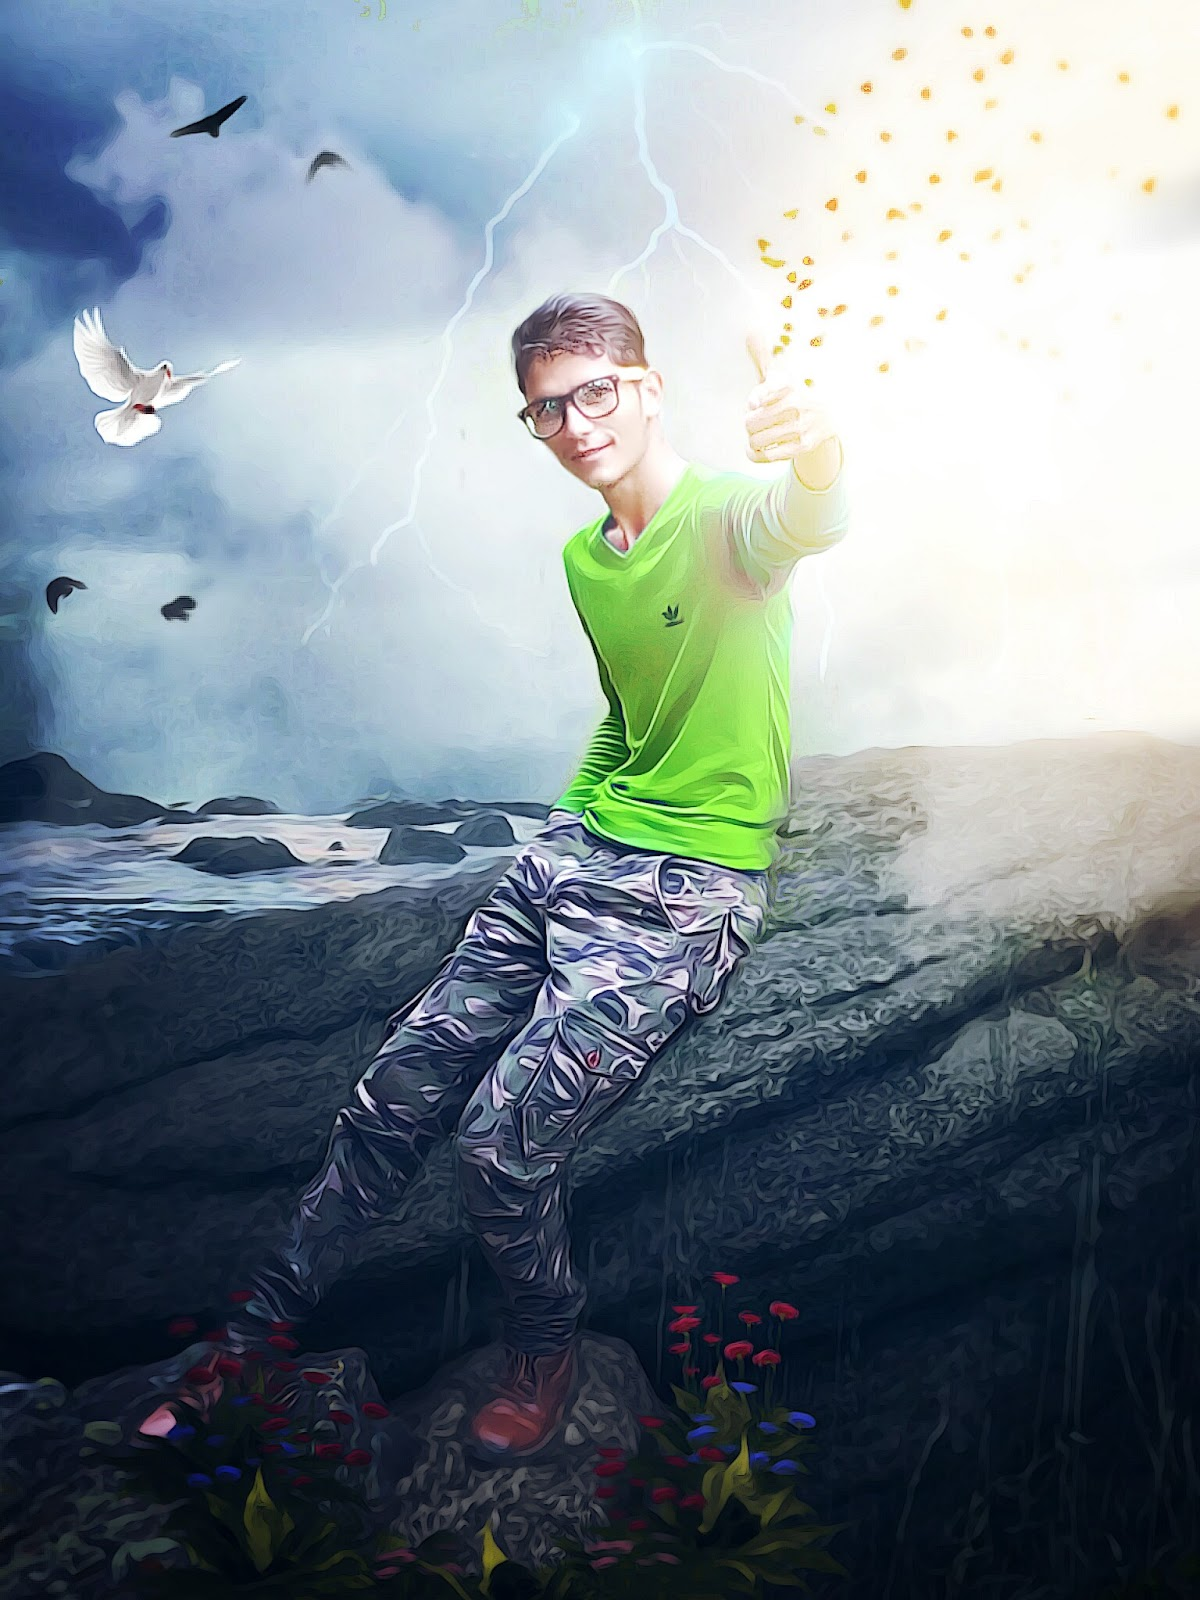 Best Editing Effects: Real Image Editing by PicsArt (Kamal ...